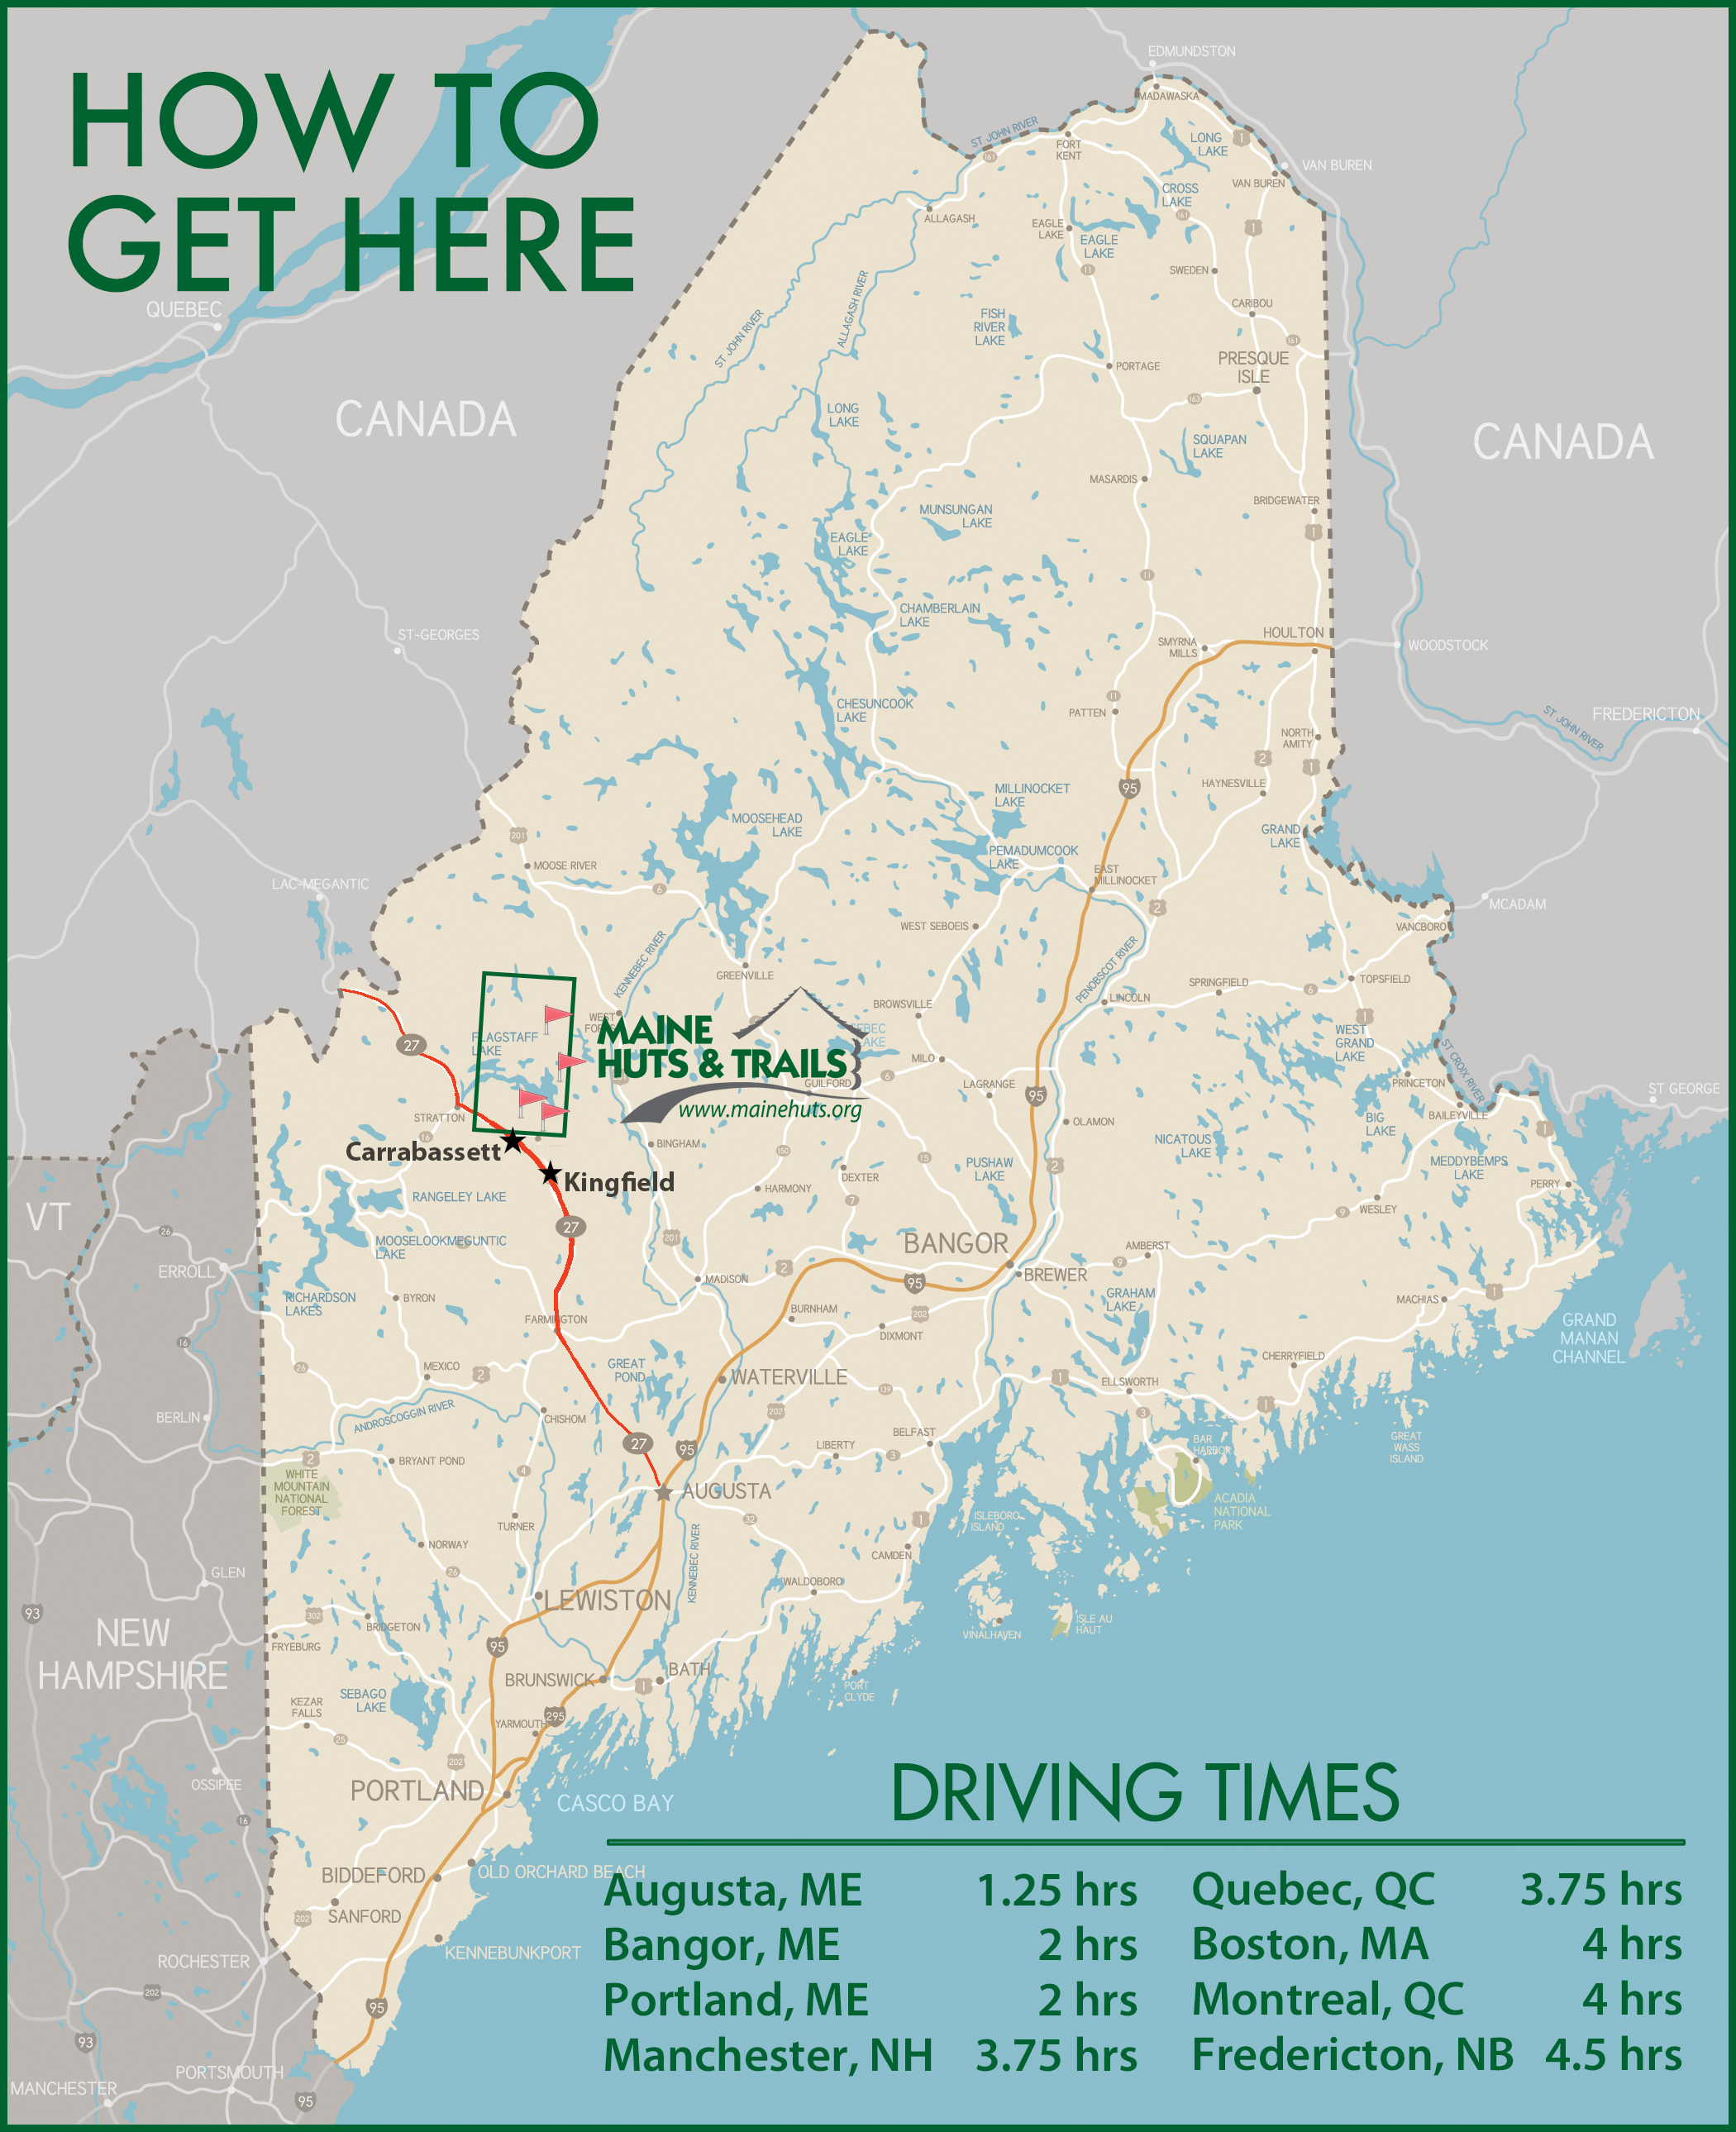 How To Get To Maine Huts Trails